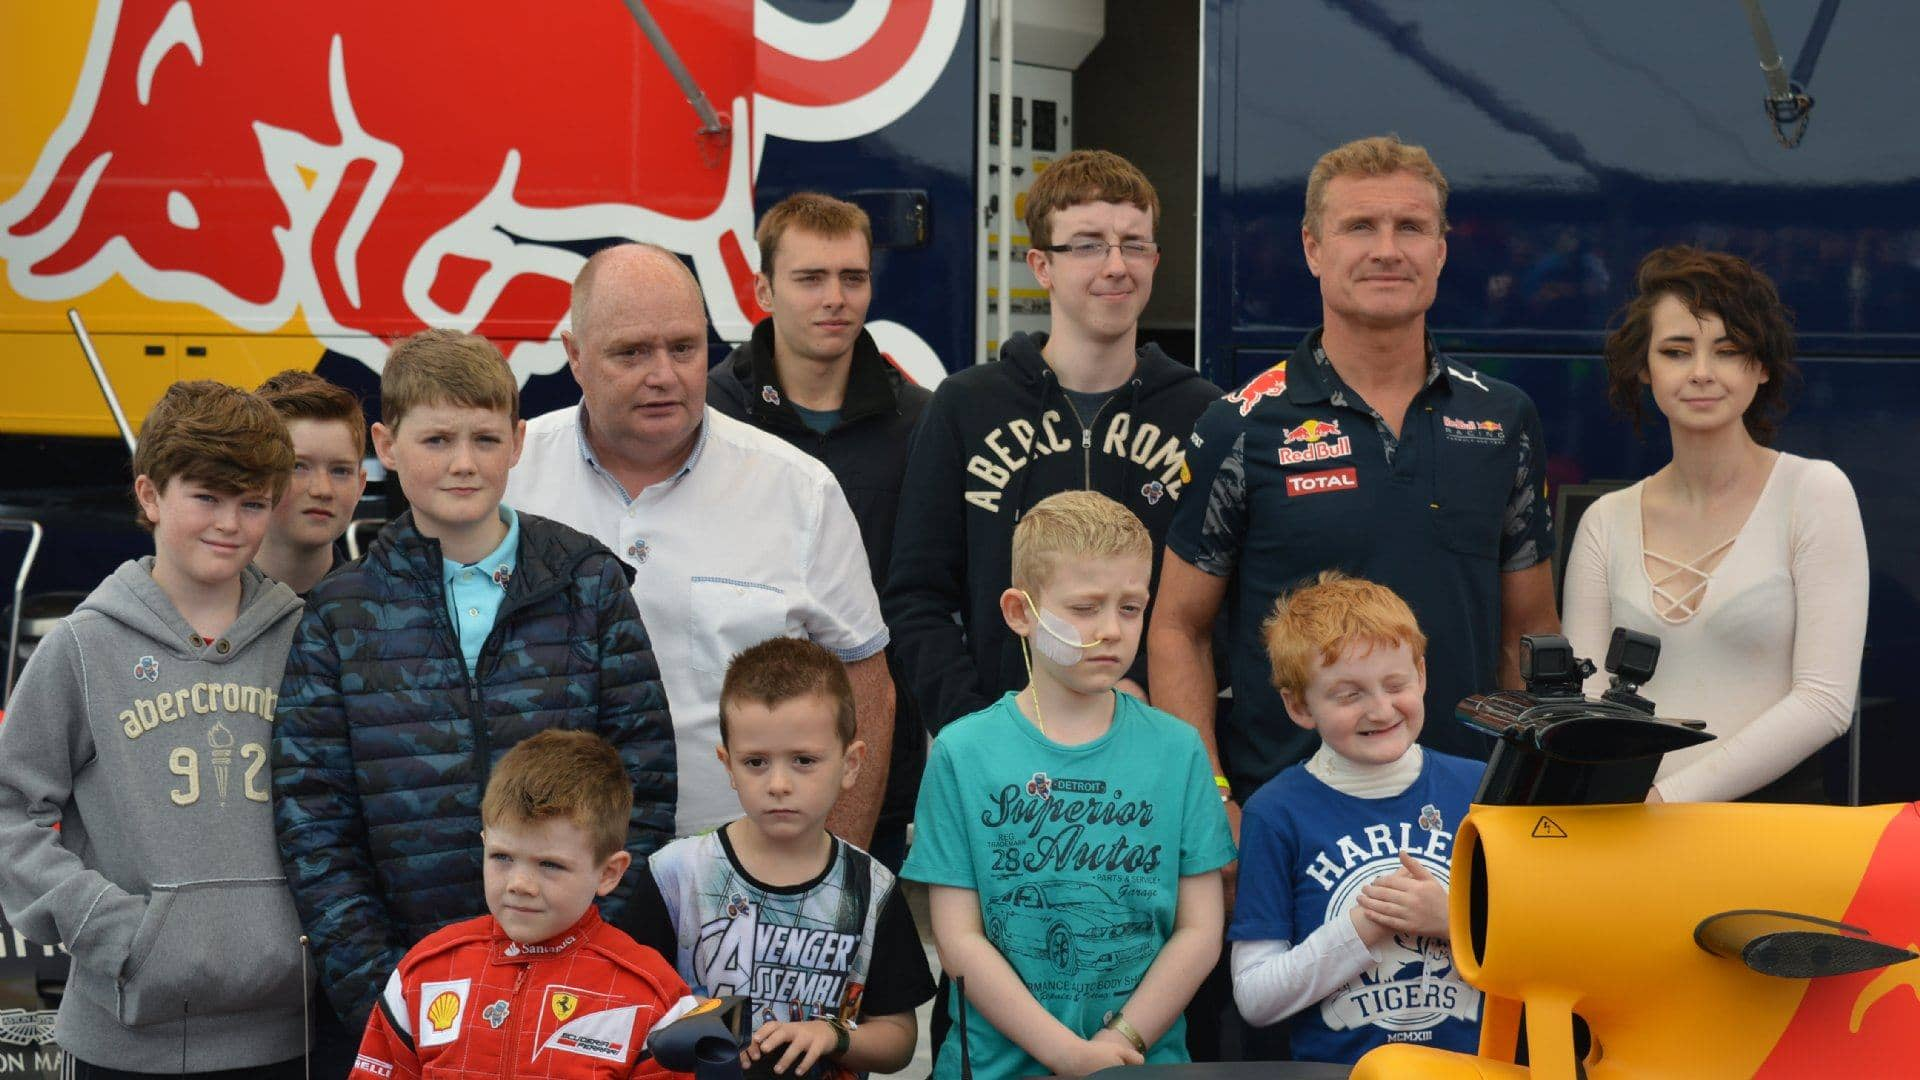 A Day with David Coulthard at Ignition